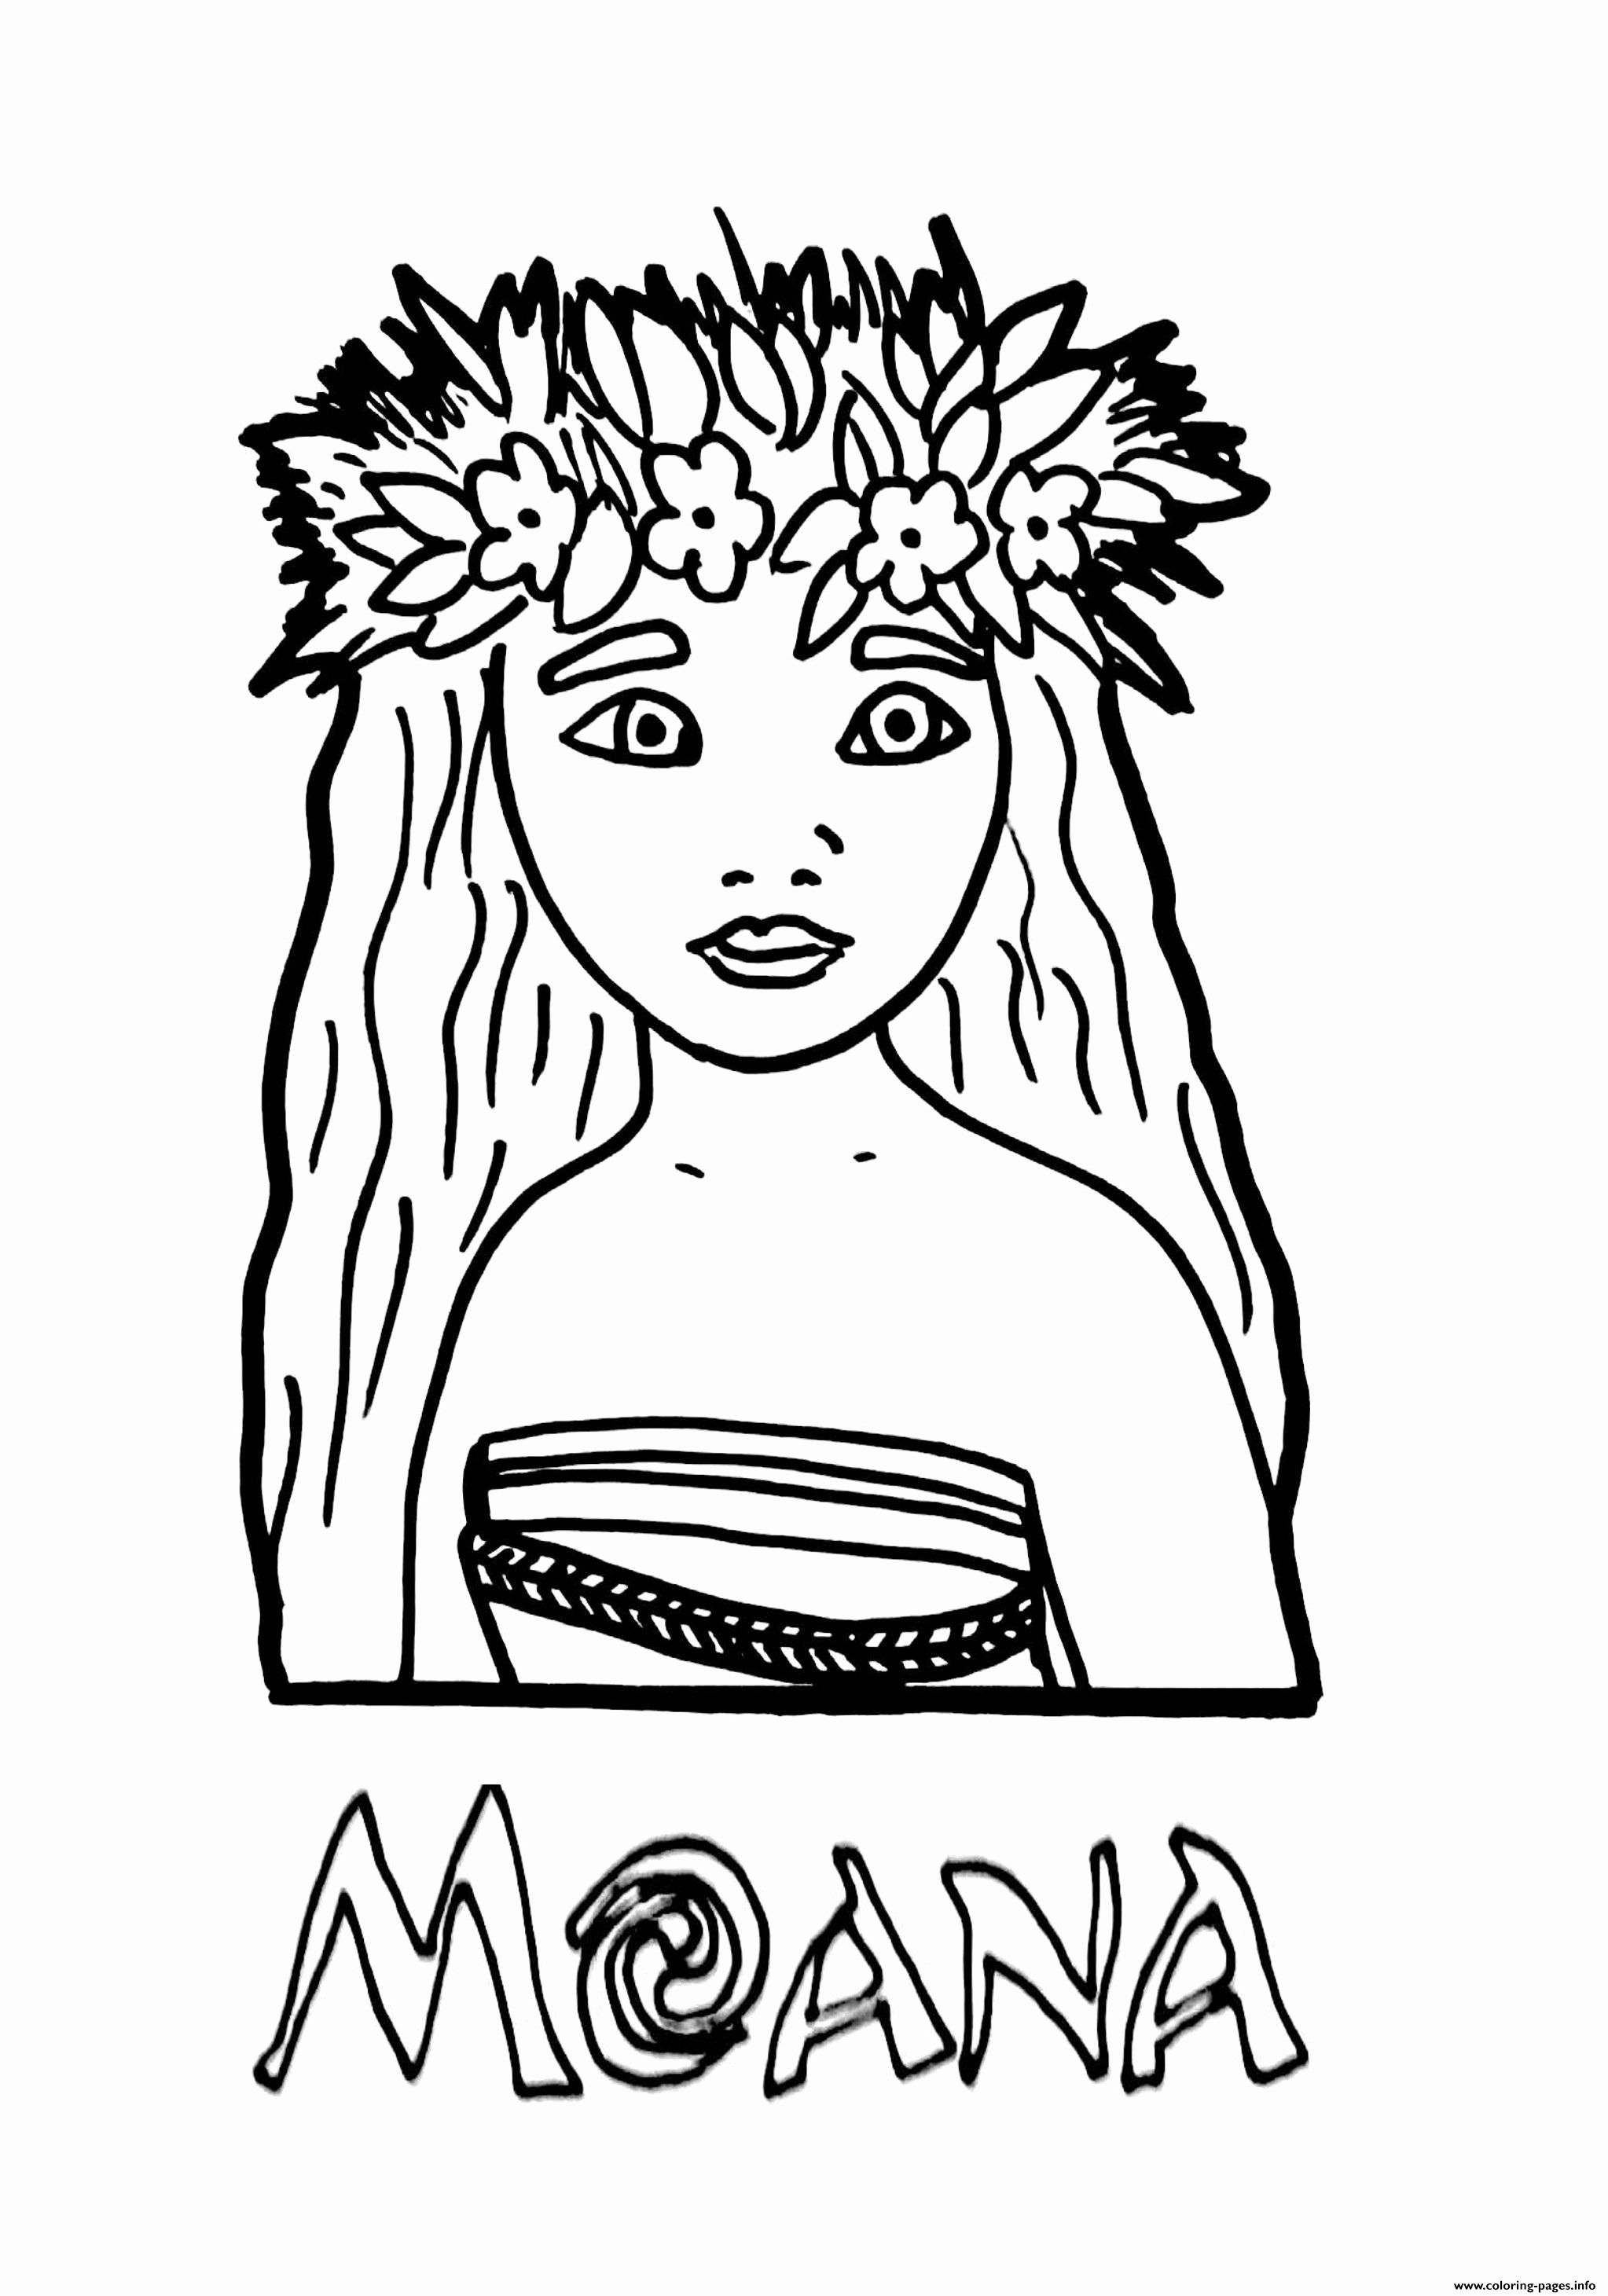 coloring pages to print for girls Download-Creative Ideas for Kids Lovely Printable Coloring Pages for Girls Lovely Printable Cds 0d – Fun 13-o